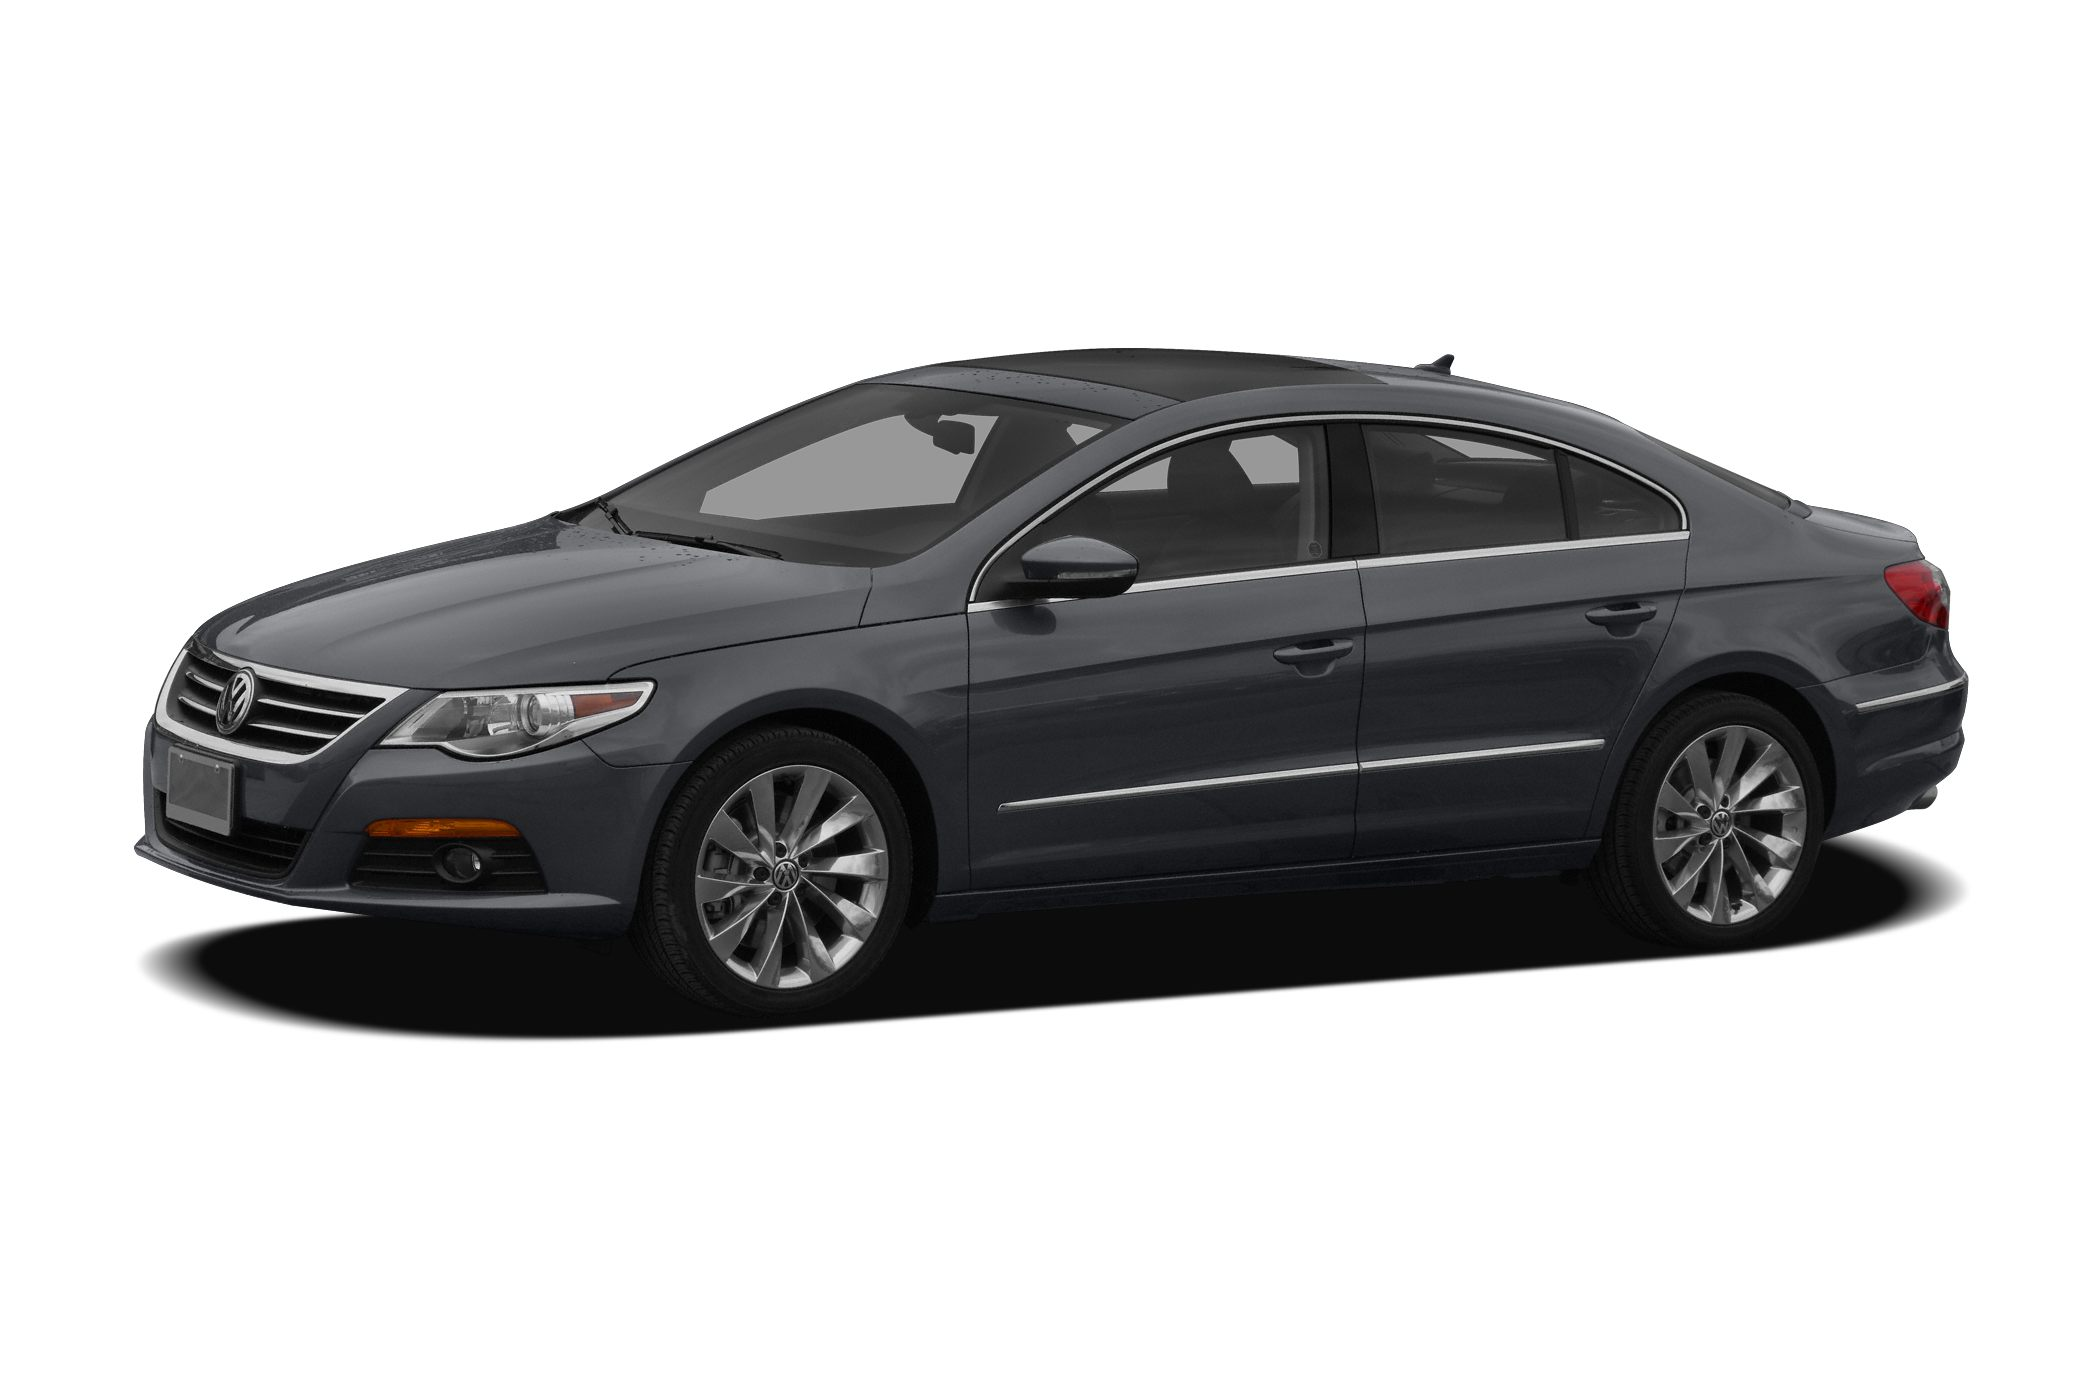 2009 Volkswagen CC Sport Looking for a used car at an affordable price Climb inside the 2009 Volk